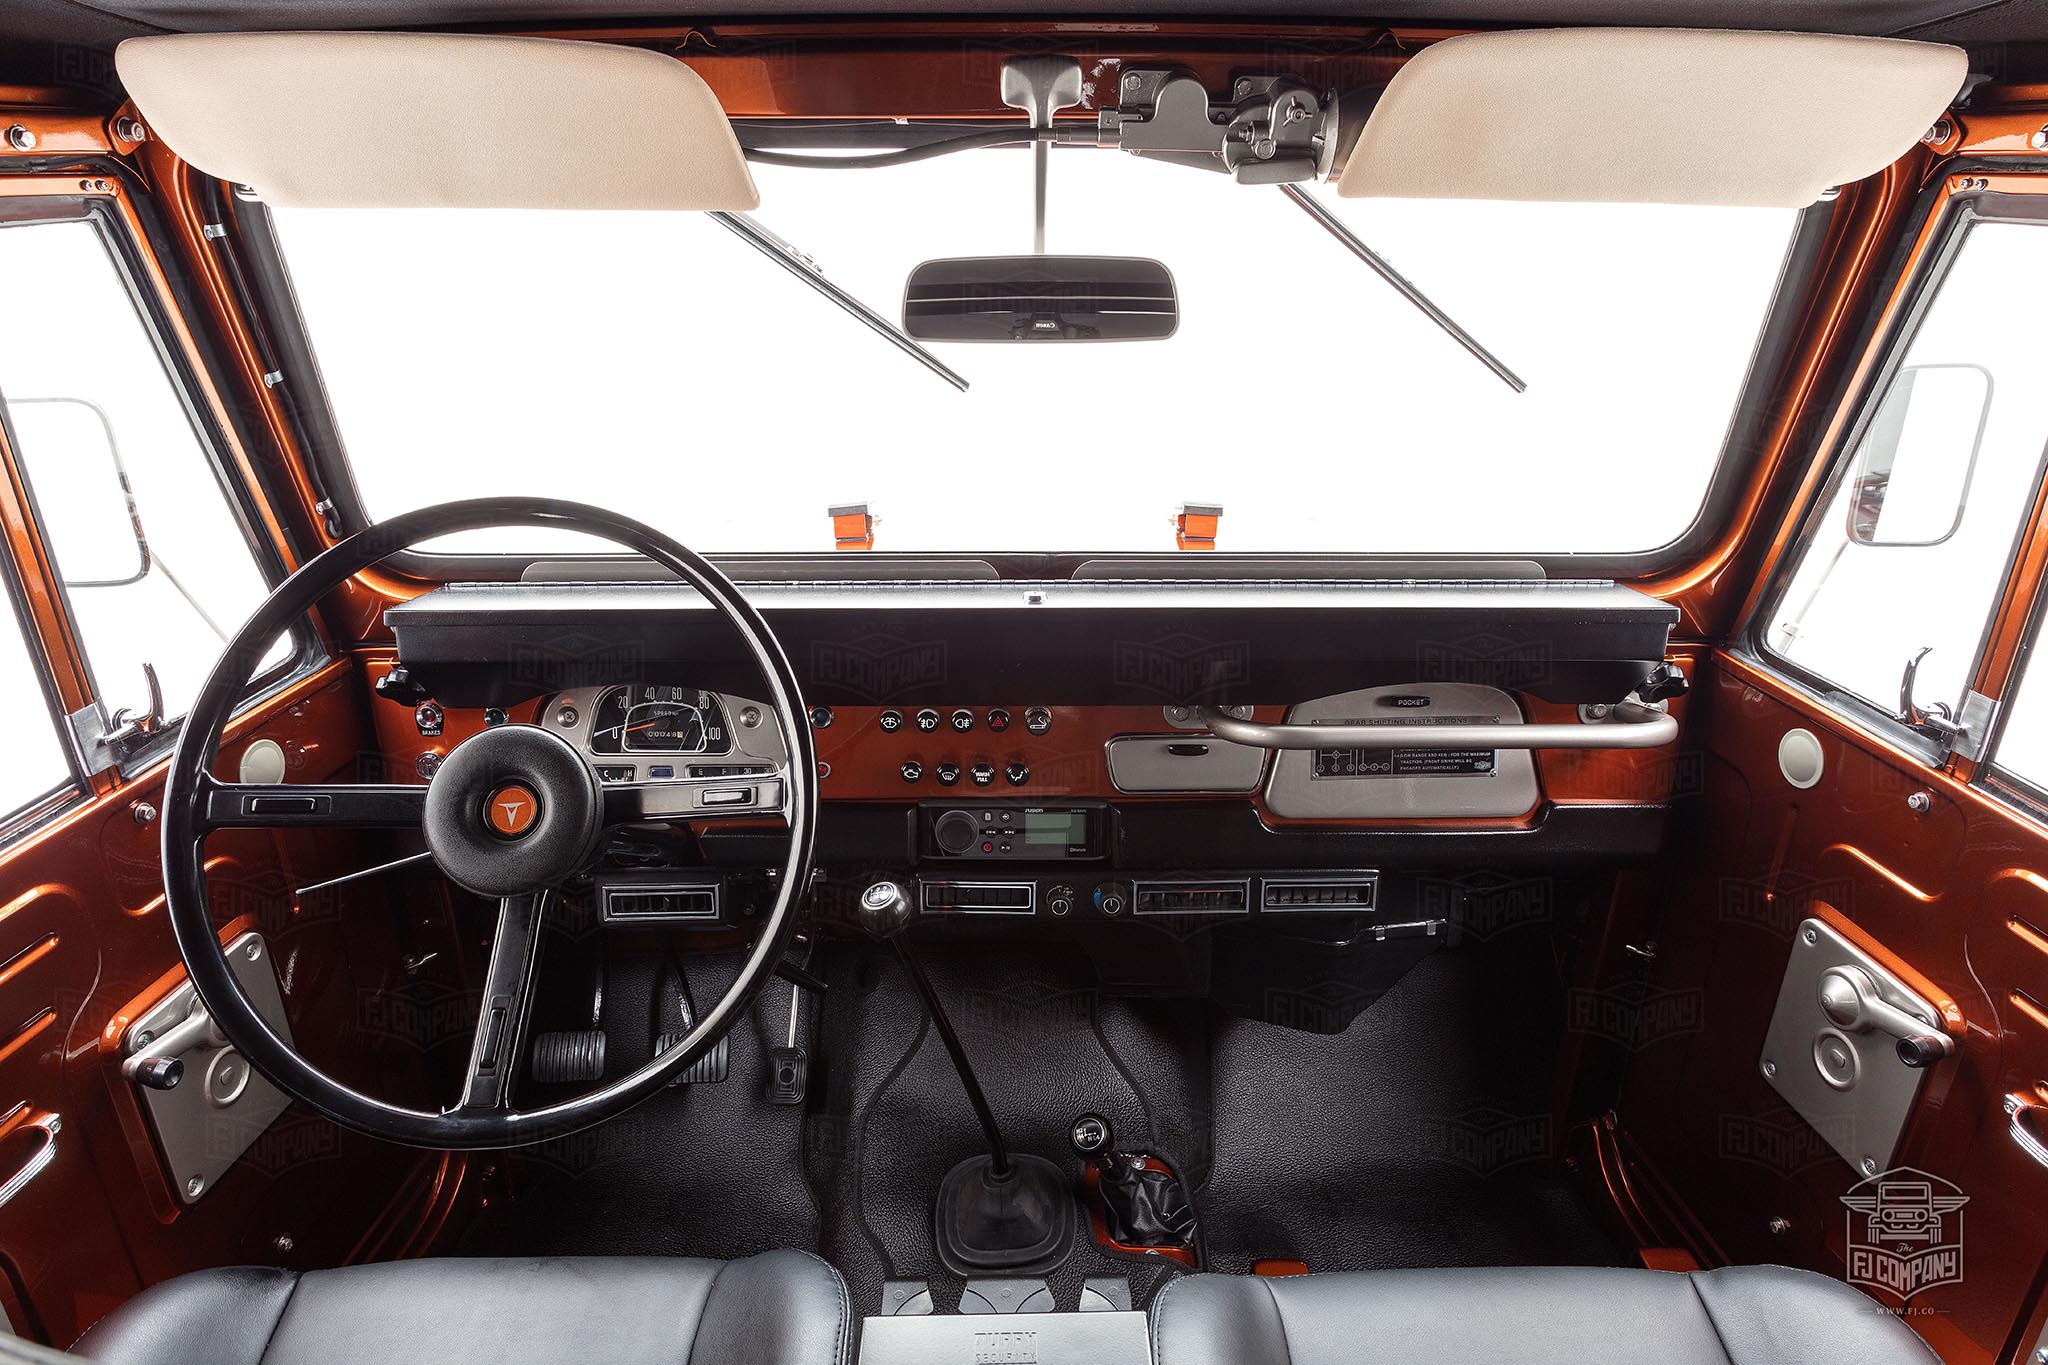 Fj company builds a 1972 toyota fj40 land cruiser inspired for Toyota land cruiser interior